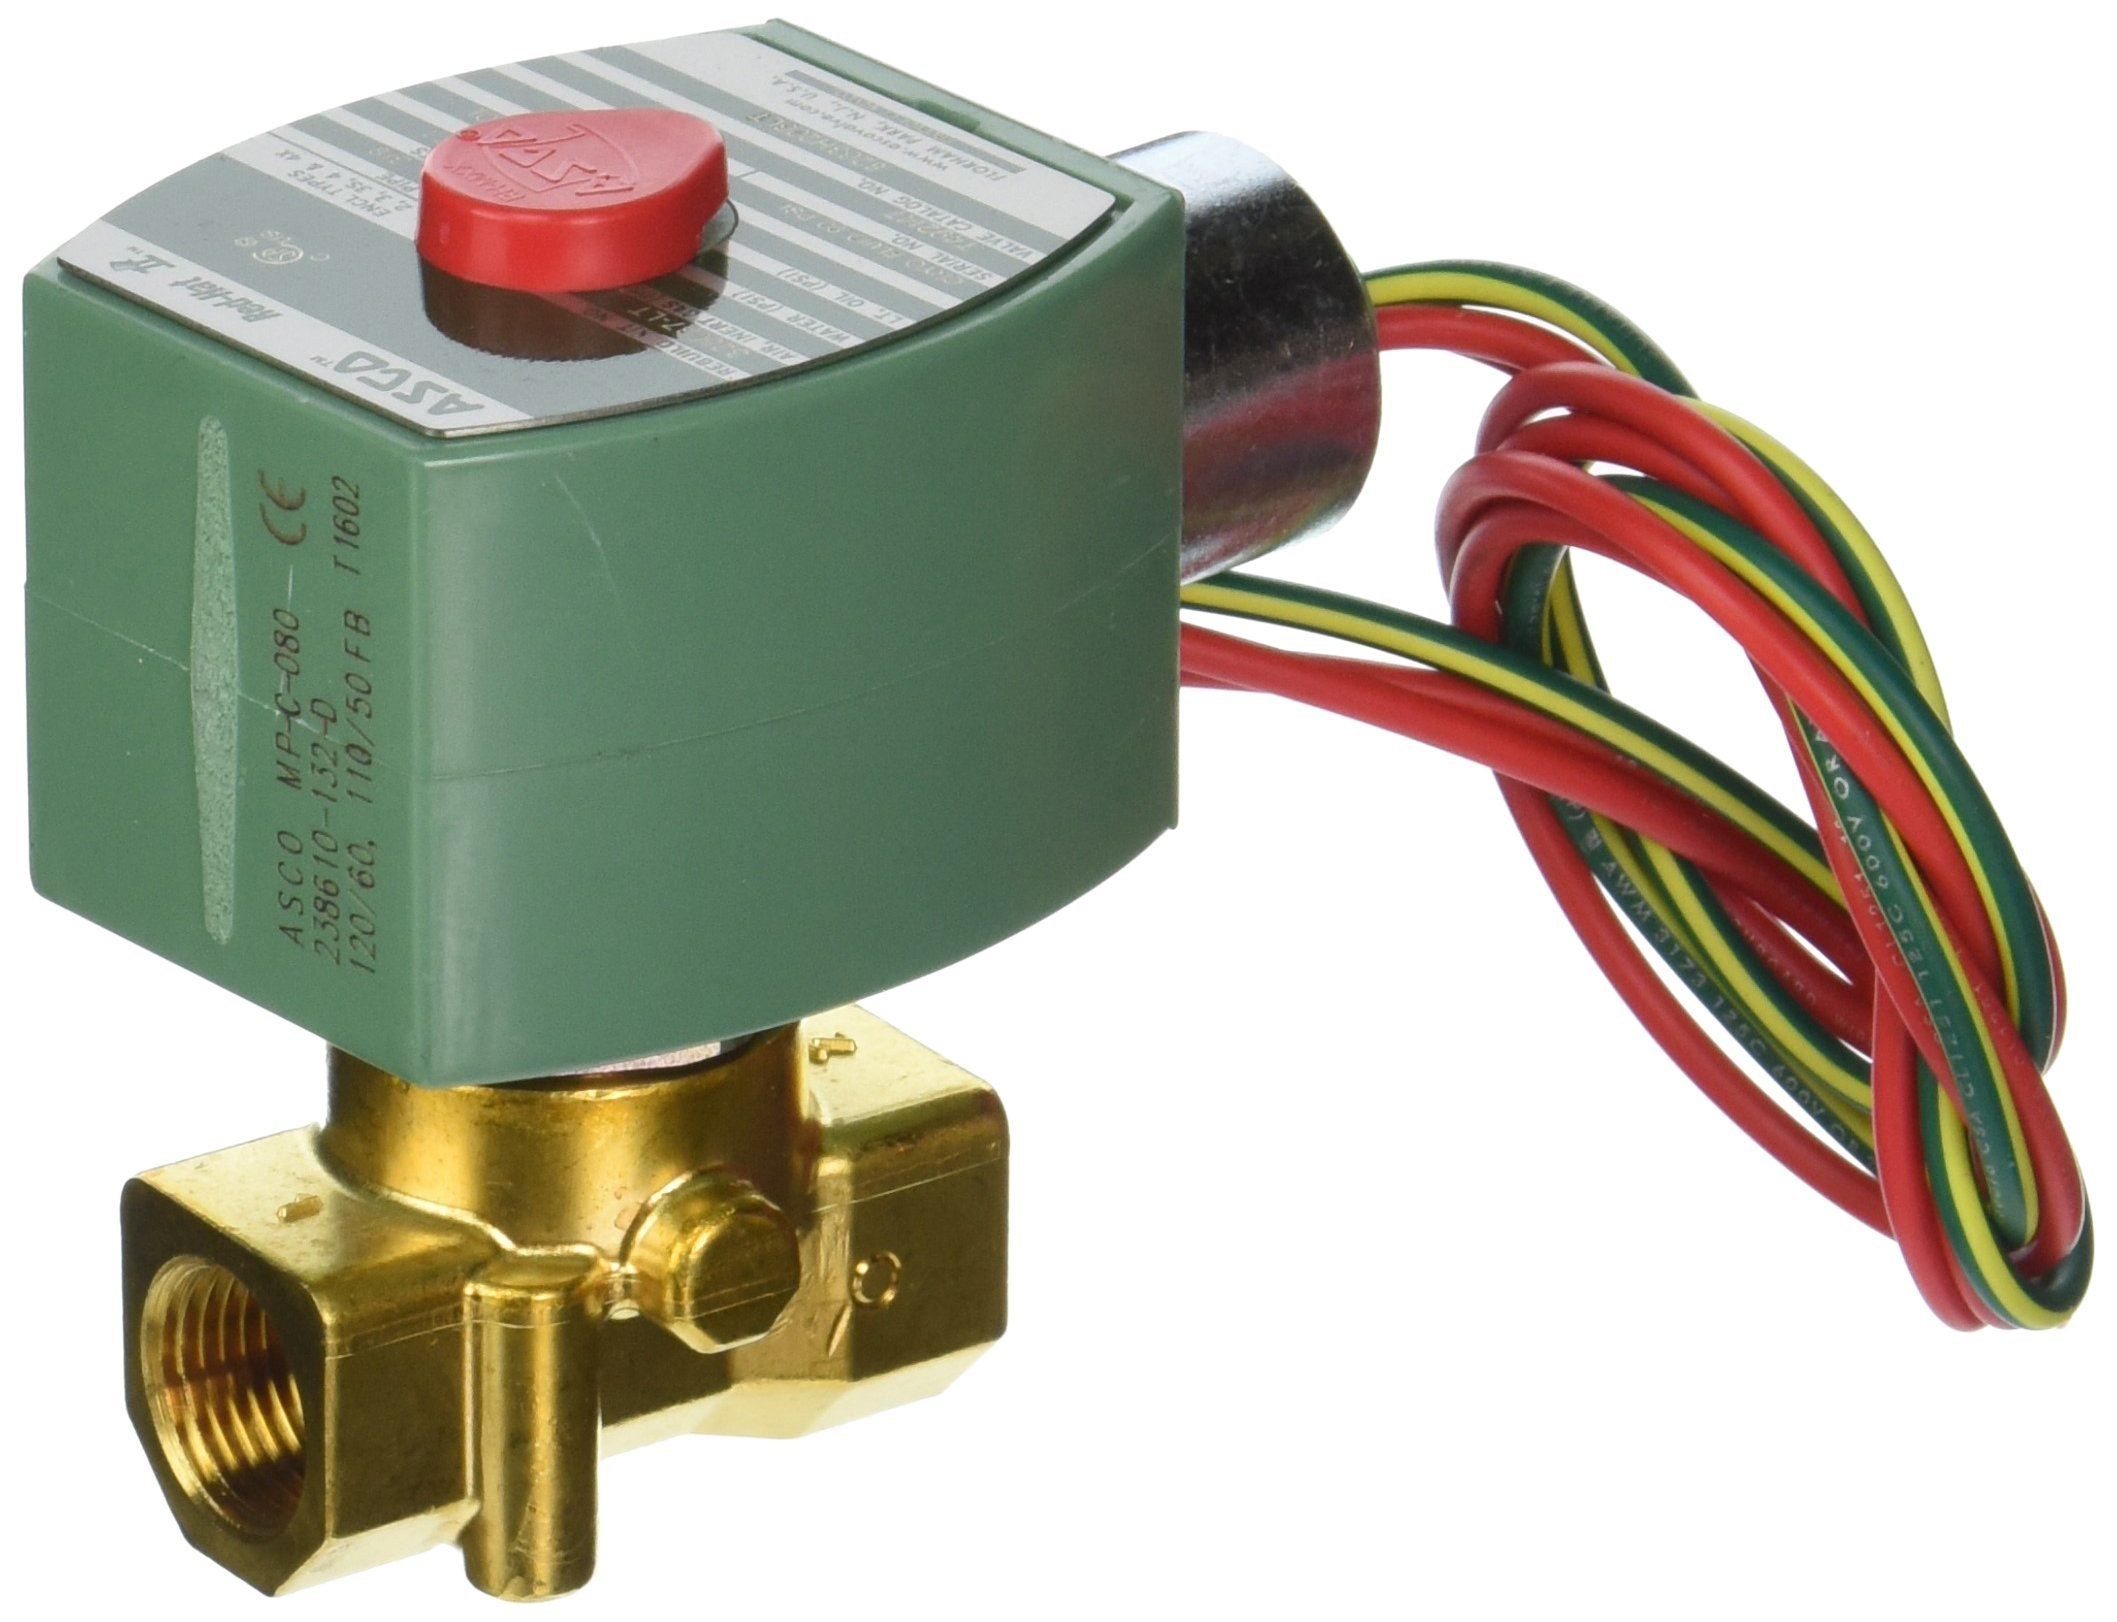 ASCO 8263H206LT-120/60,110/50 Brass Body Direct Acting/Pilot Operated Cryogenic Valve, 3/8'' Pipe Size, 2-Way Normally Closed, PTFE Sealing, 7/32'' Orifice, 0.73 Cv Flow, 120V/60 Hz, 110V/50 Hz by Asco